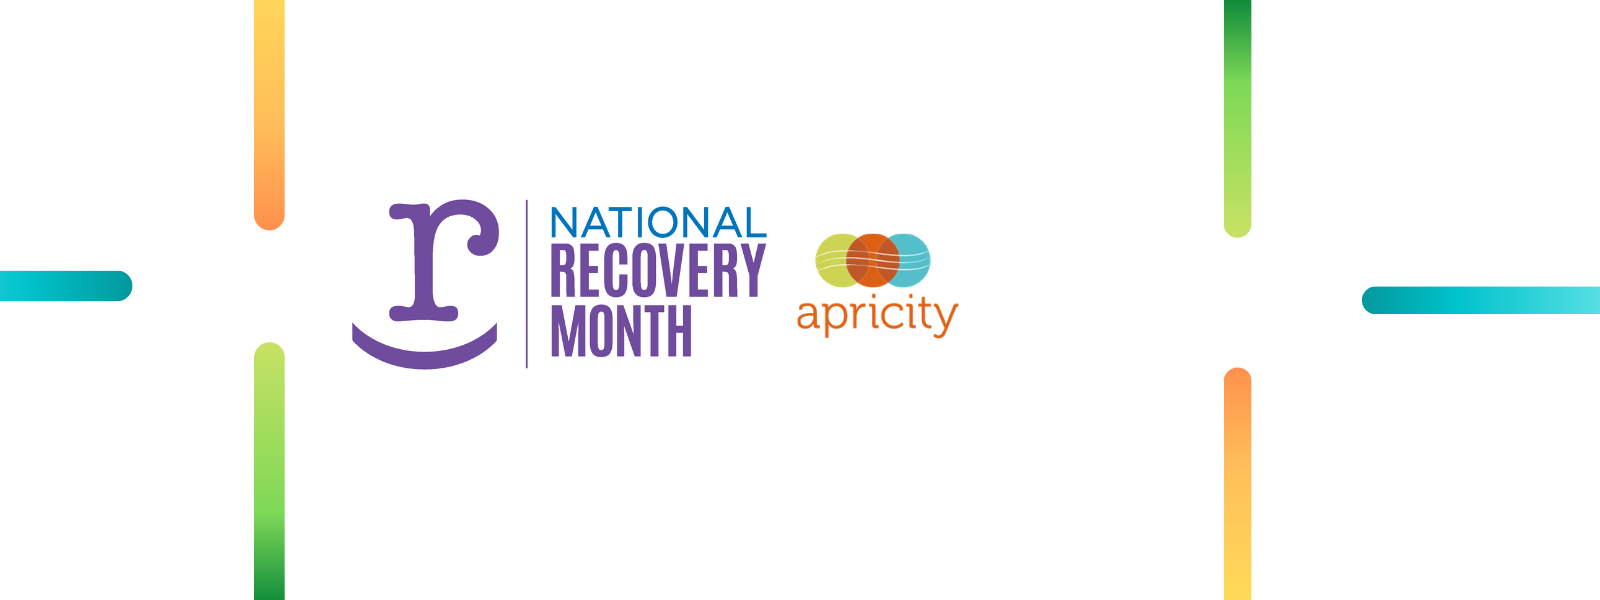 Give a gift in celebration of Recovery Month. Give online or by sending a gift to: 1010 Strohmeyer Dr.,  ATTN: Recovery Month, Neenah, WI 54956  image